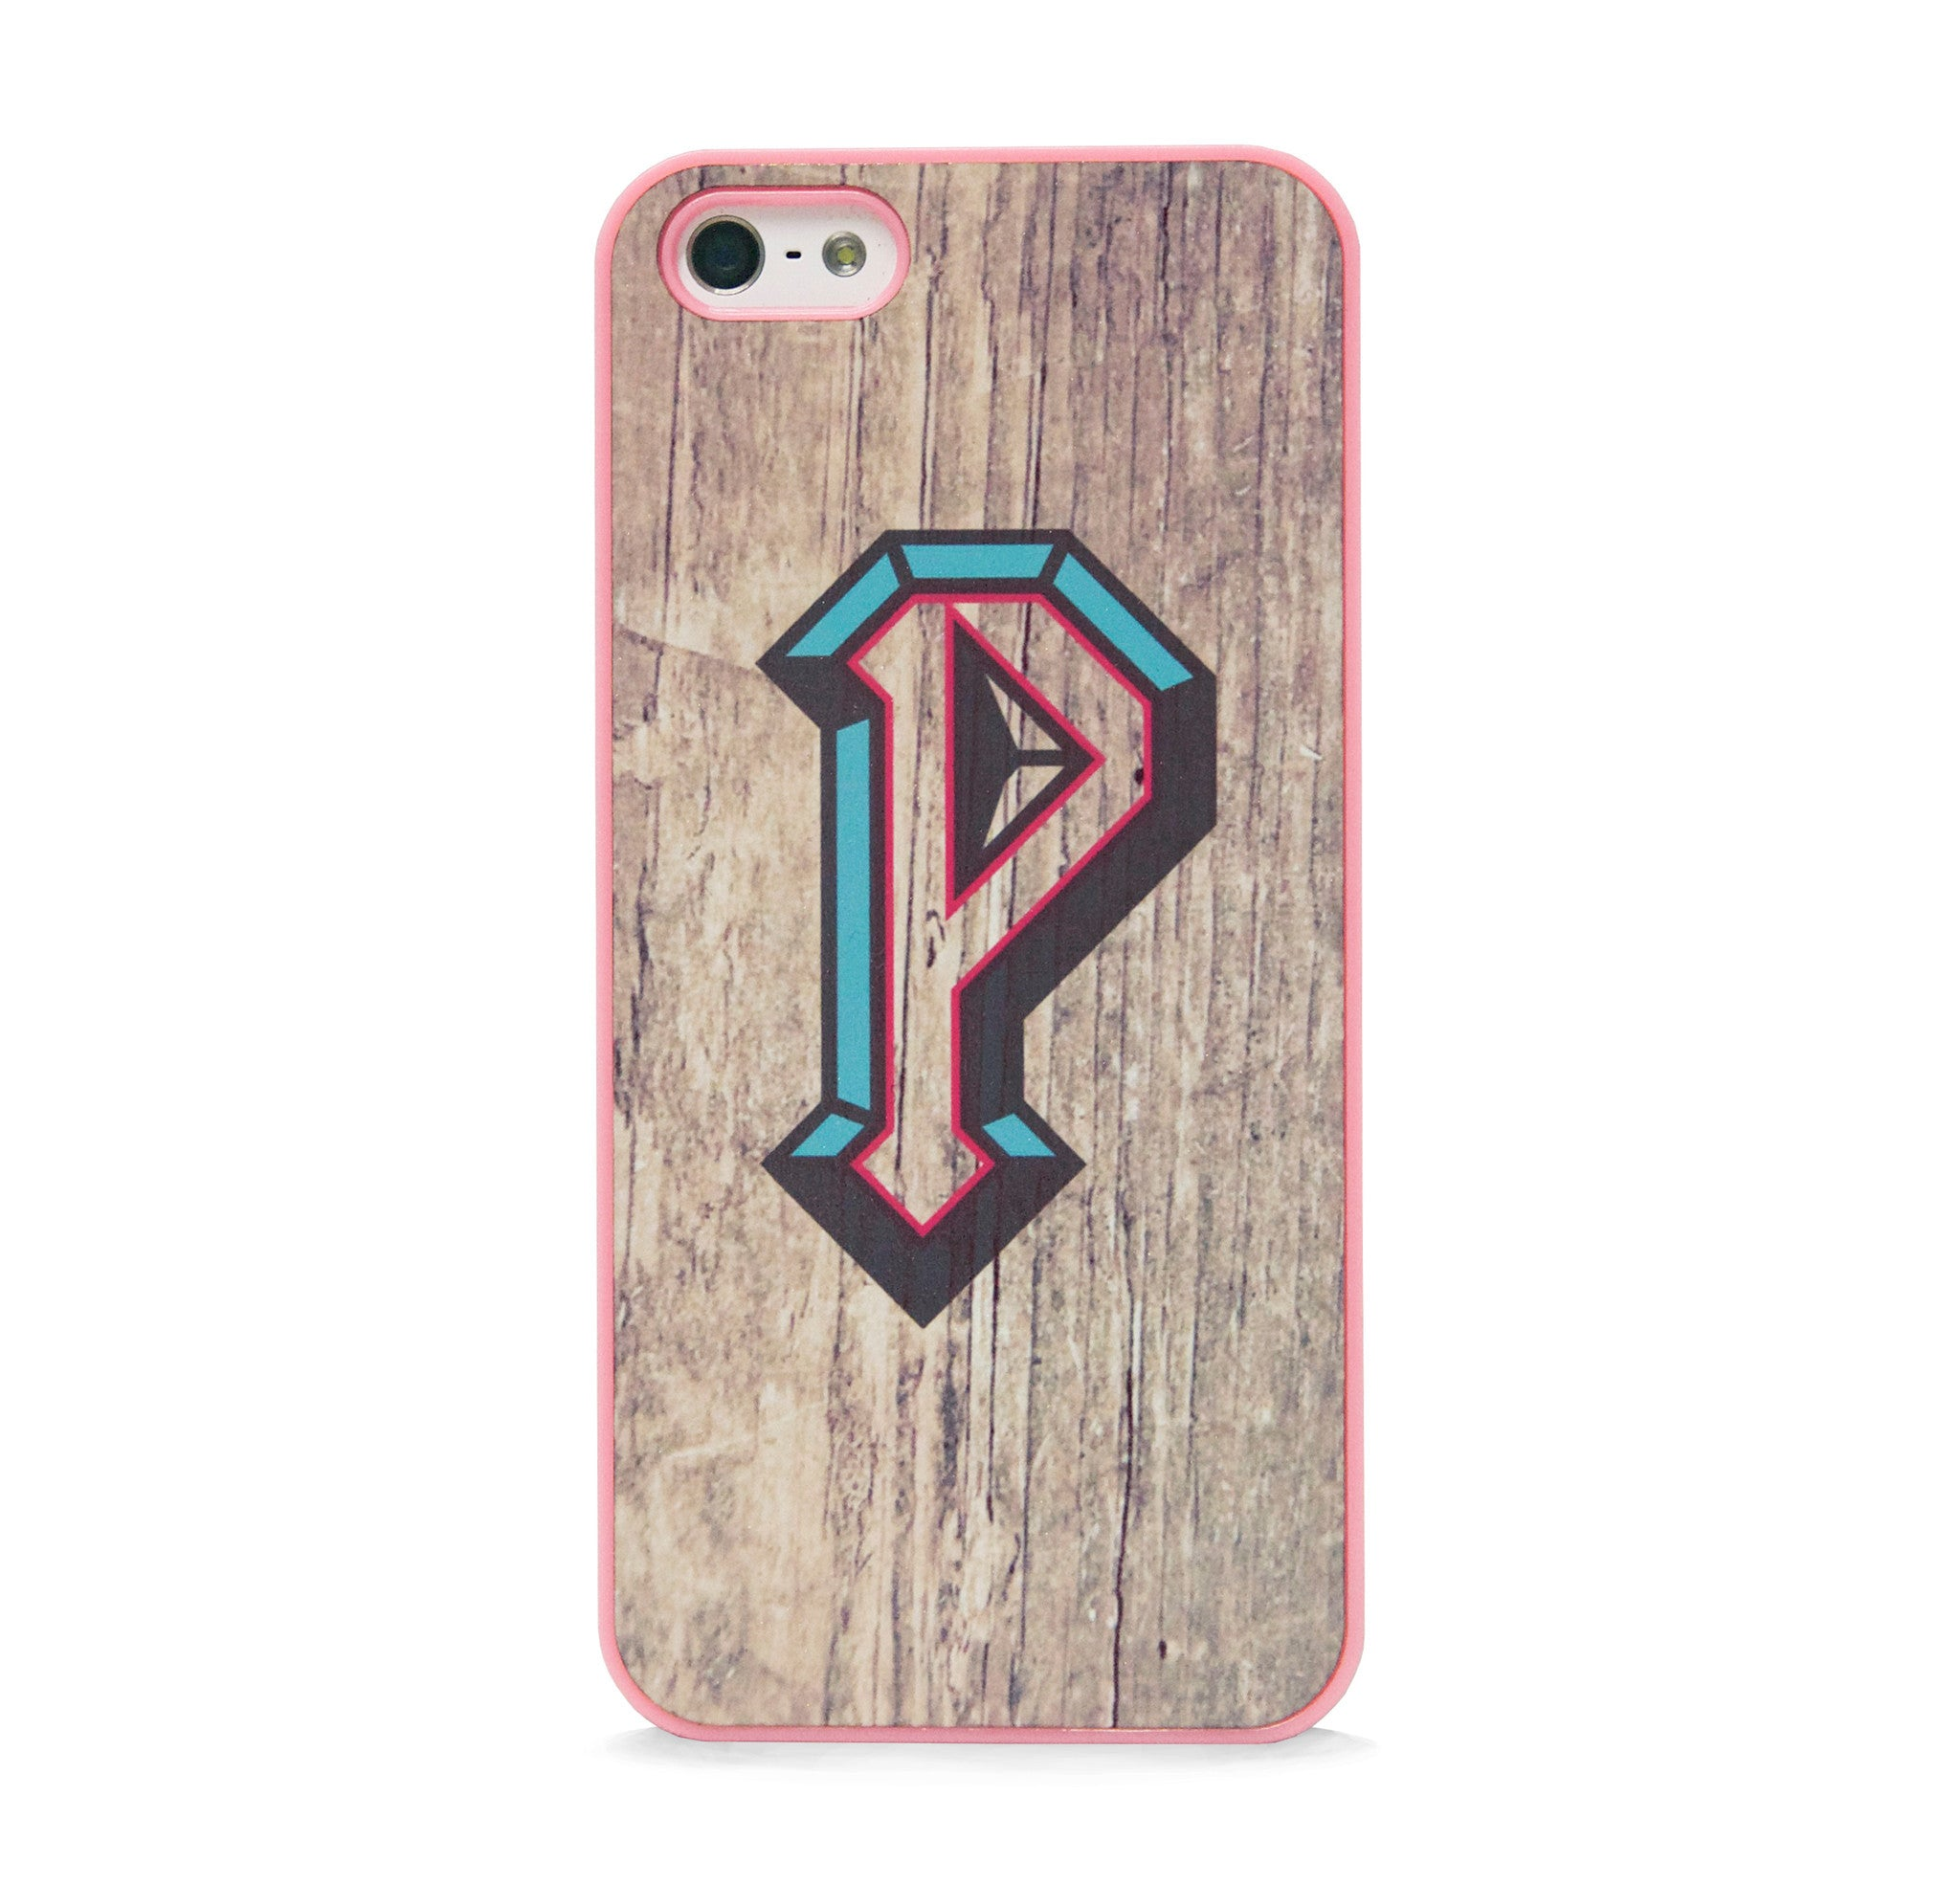 INITIAL P FOR IPHONE 5/5S, IPHONE SE